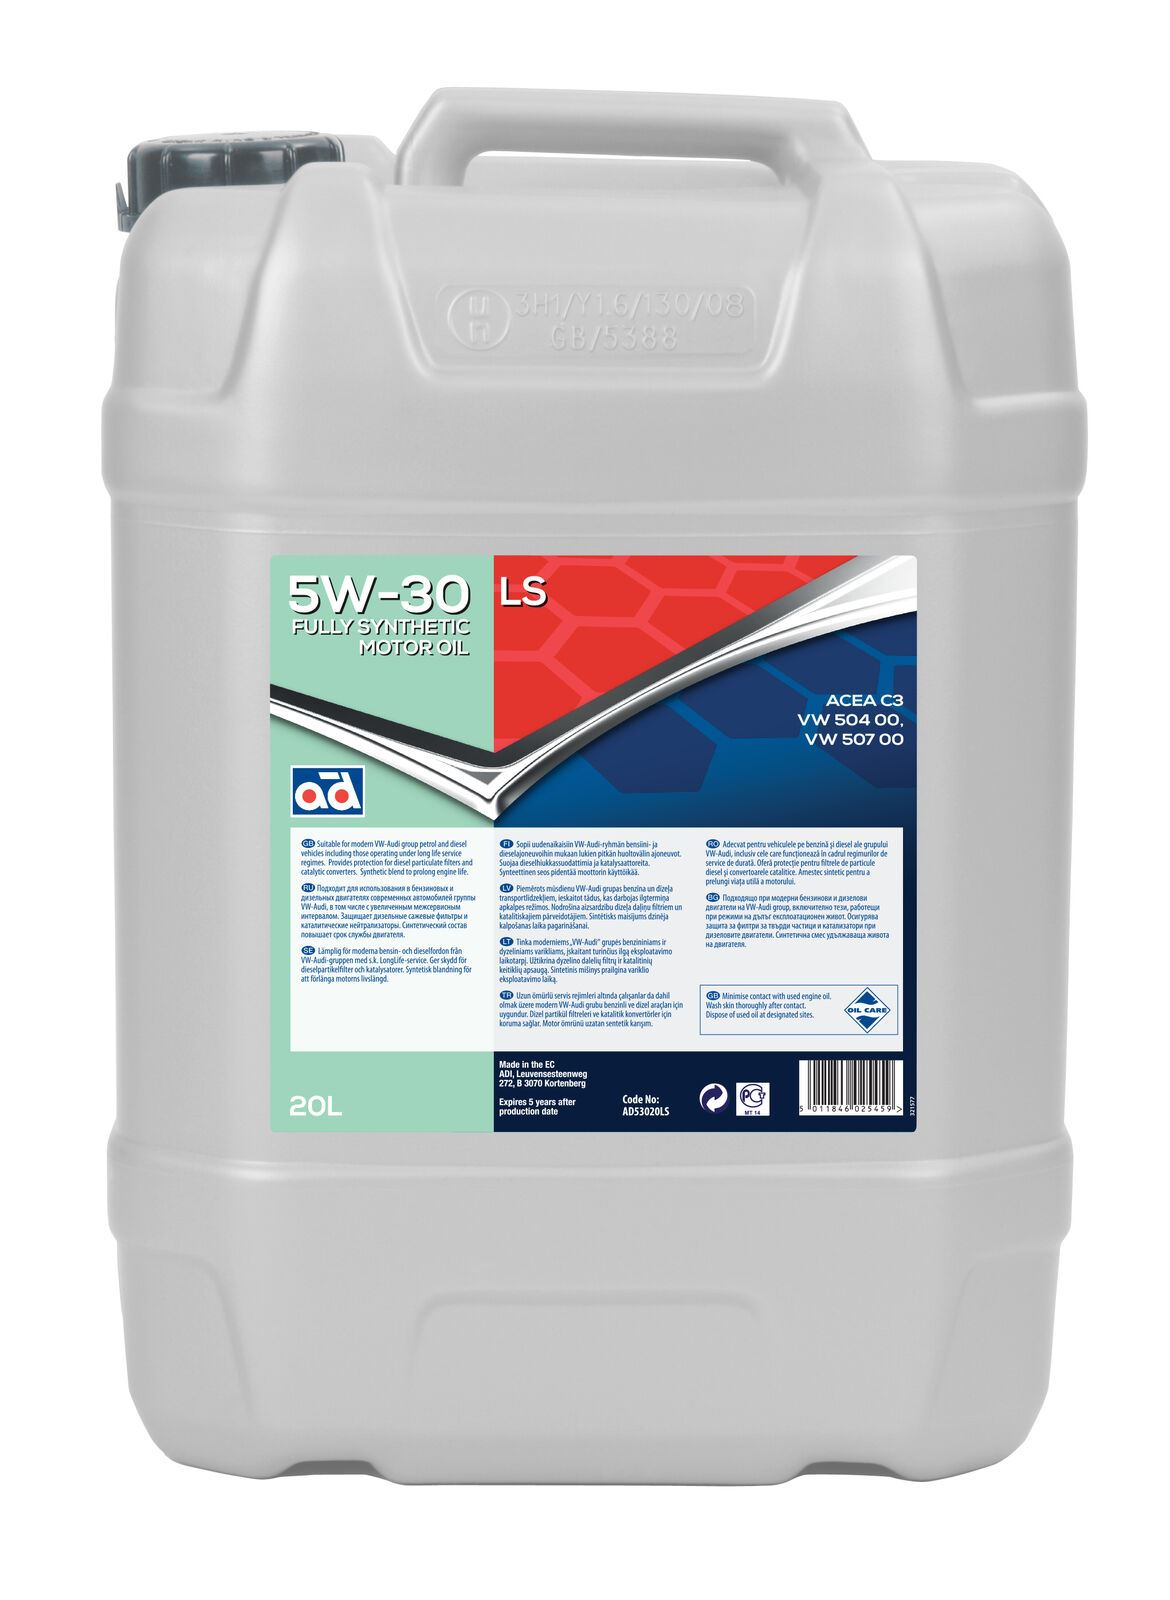 Genuine AD 5W-30 LS Fully Synthetic Motor Oil AD53020LS (20 litres)